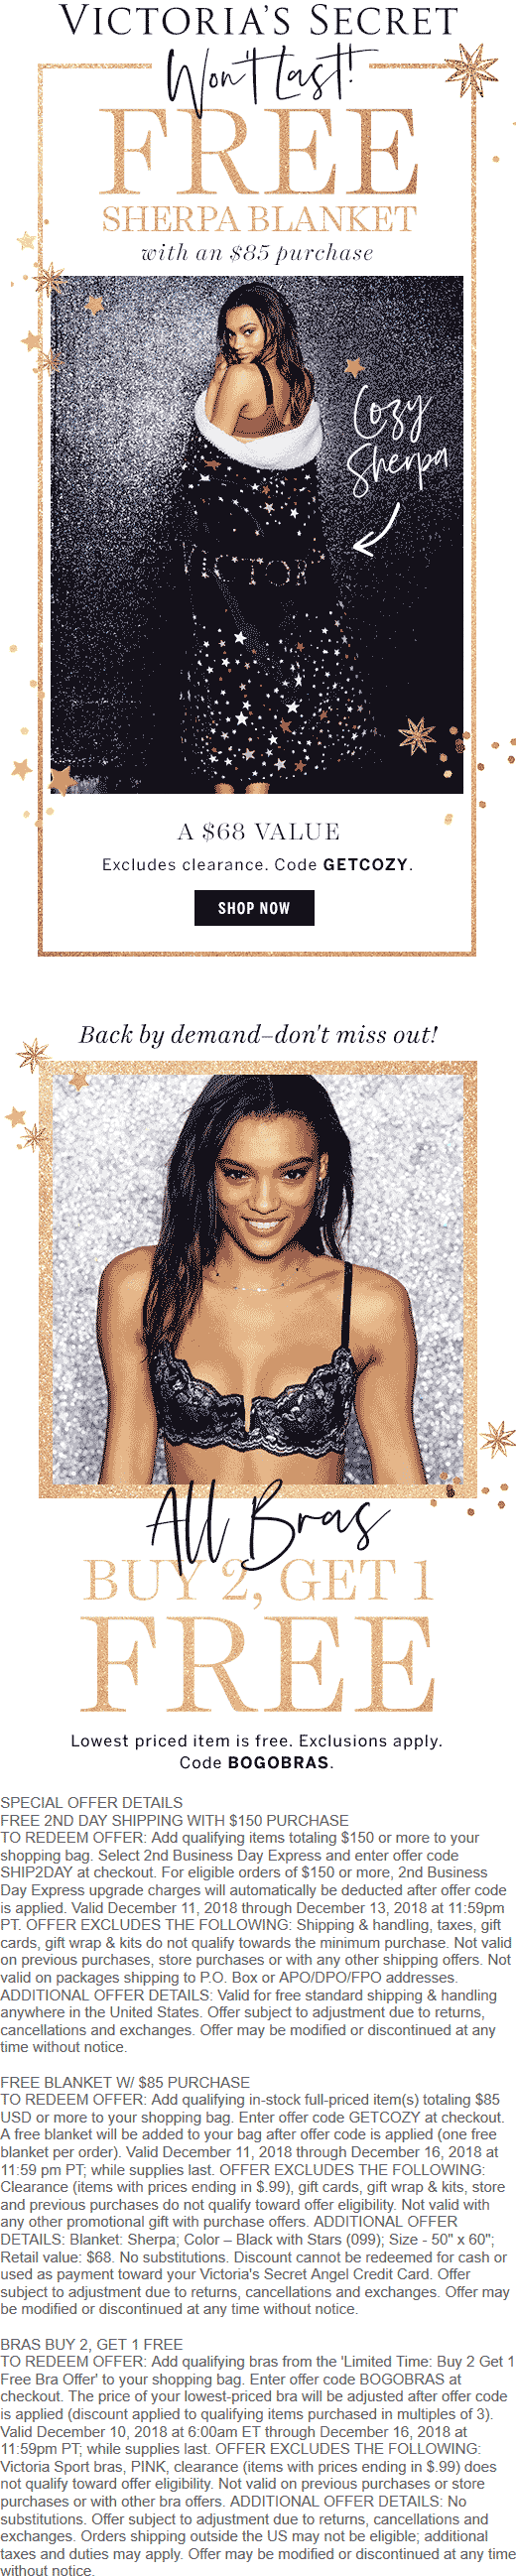 Victorias Secret Coupon August 2020 Free $68 sherpa blanked with $85 spent at Victorias Secret via promo code GETCOZY